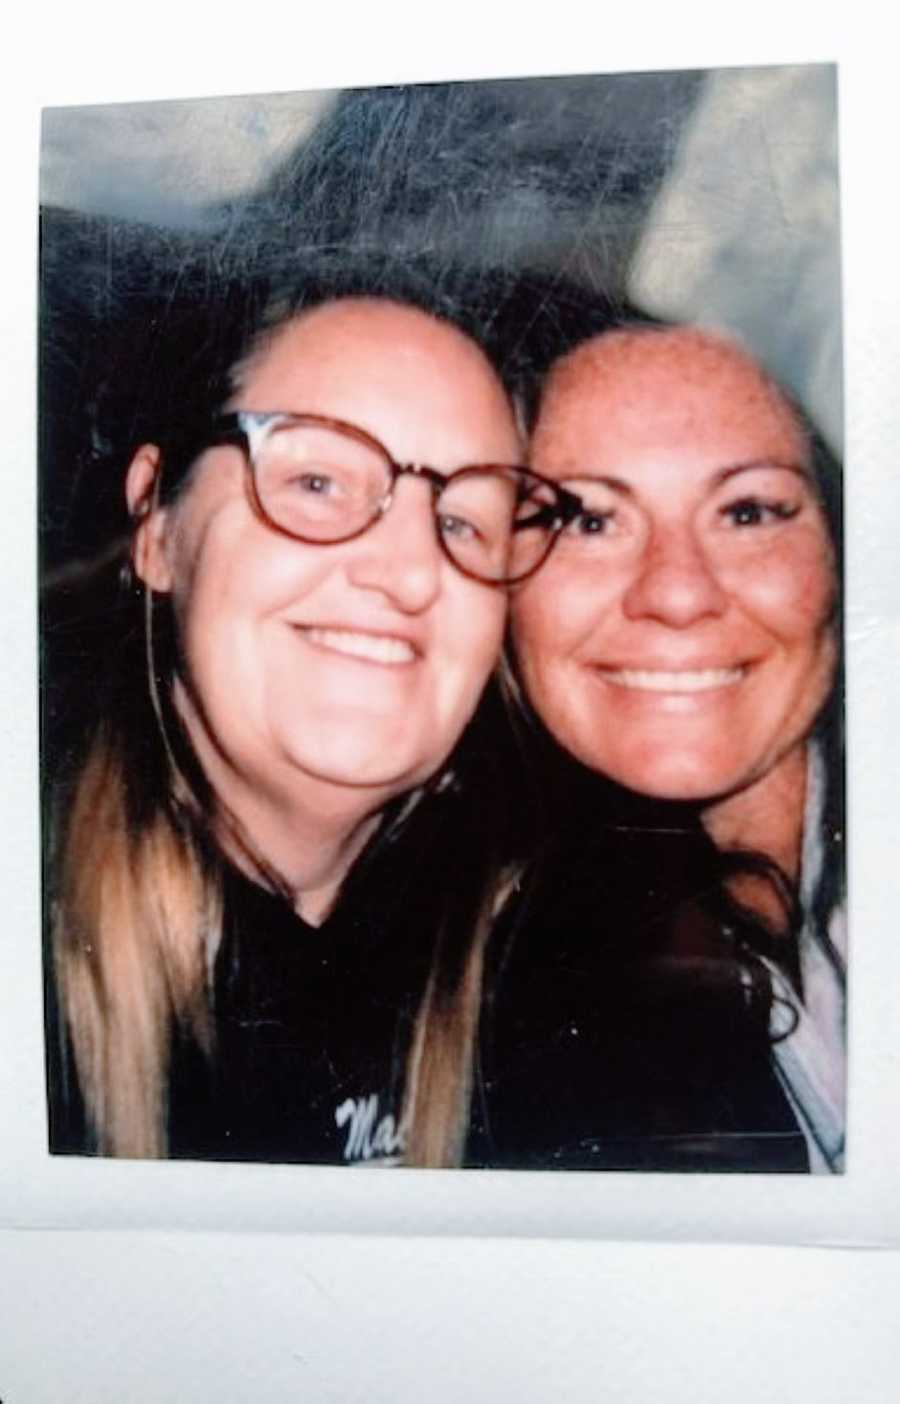 Lesbian couple take a polaroid photo together while on a date